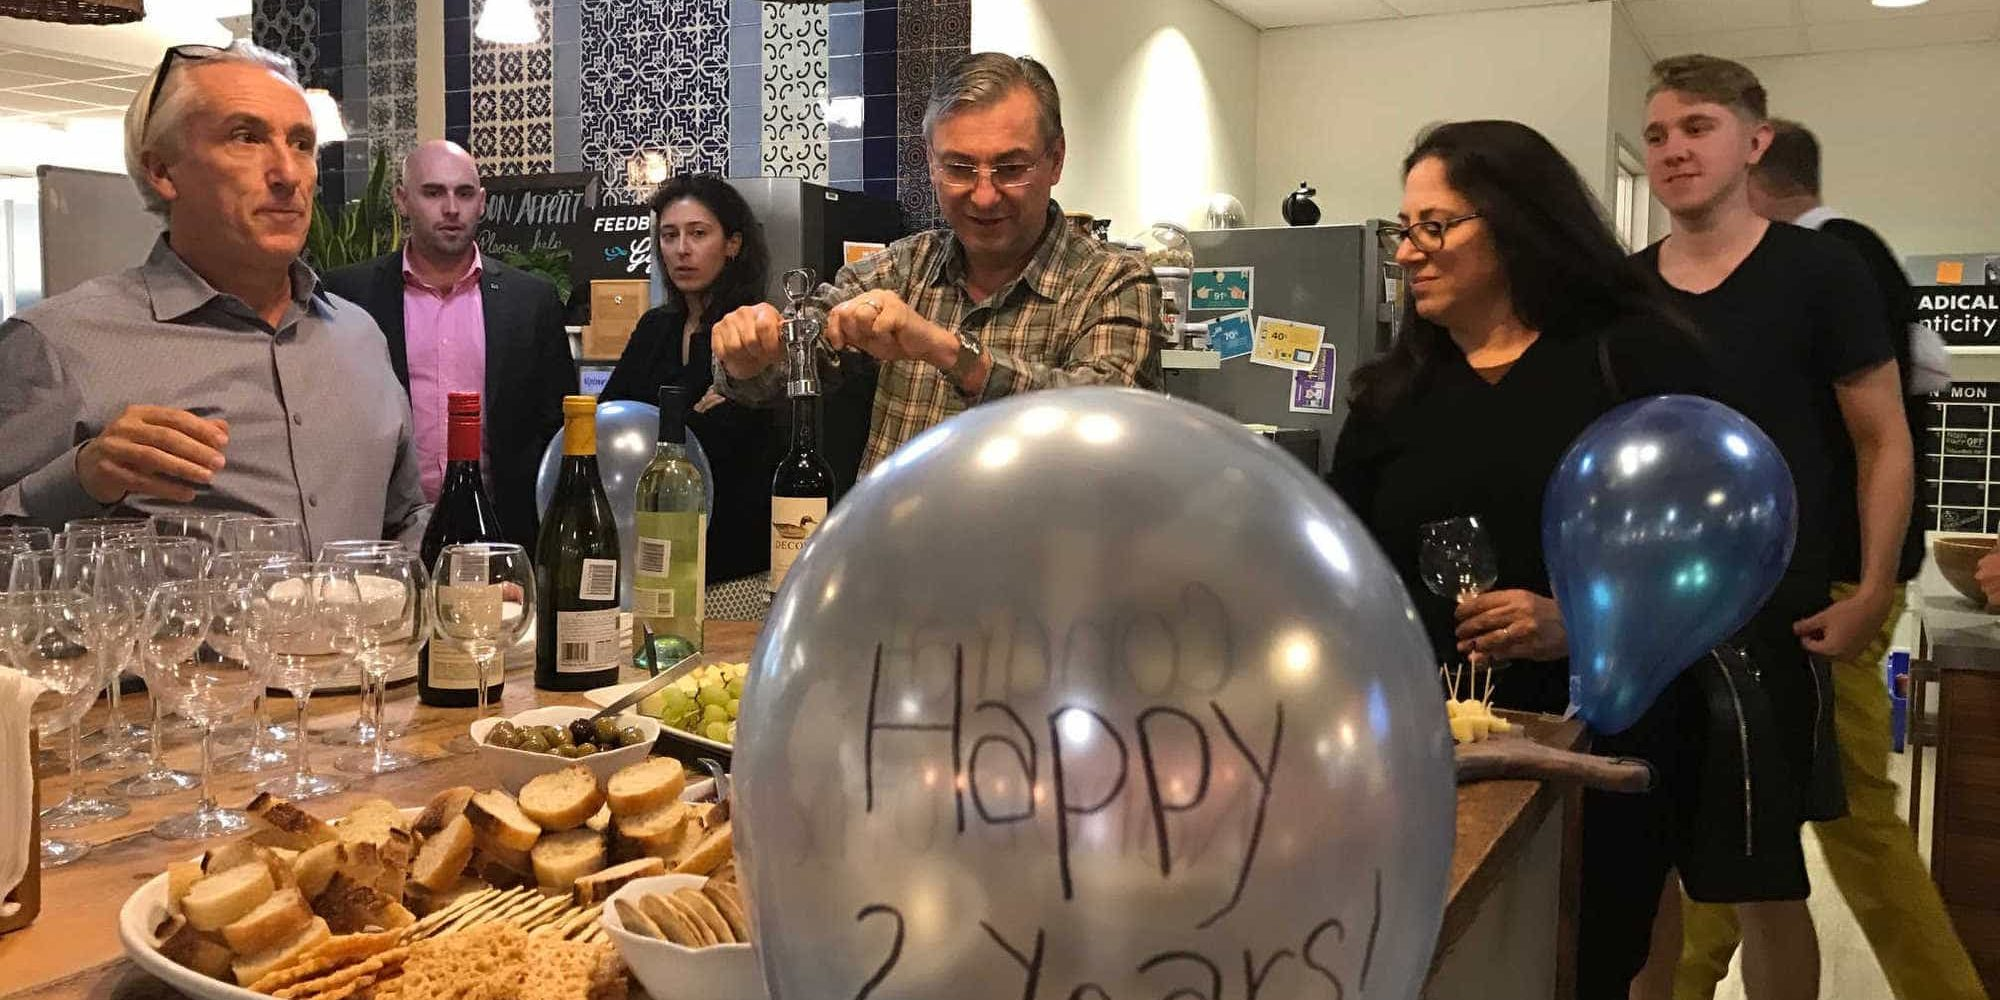 Many members celebrating a 2 year anniversary in NGIN Workplace's kitchen and dining area, with food, wine, and balloons.